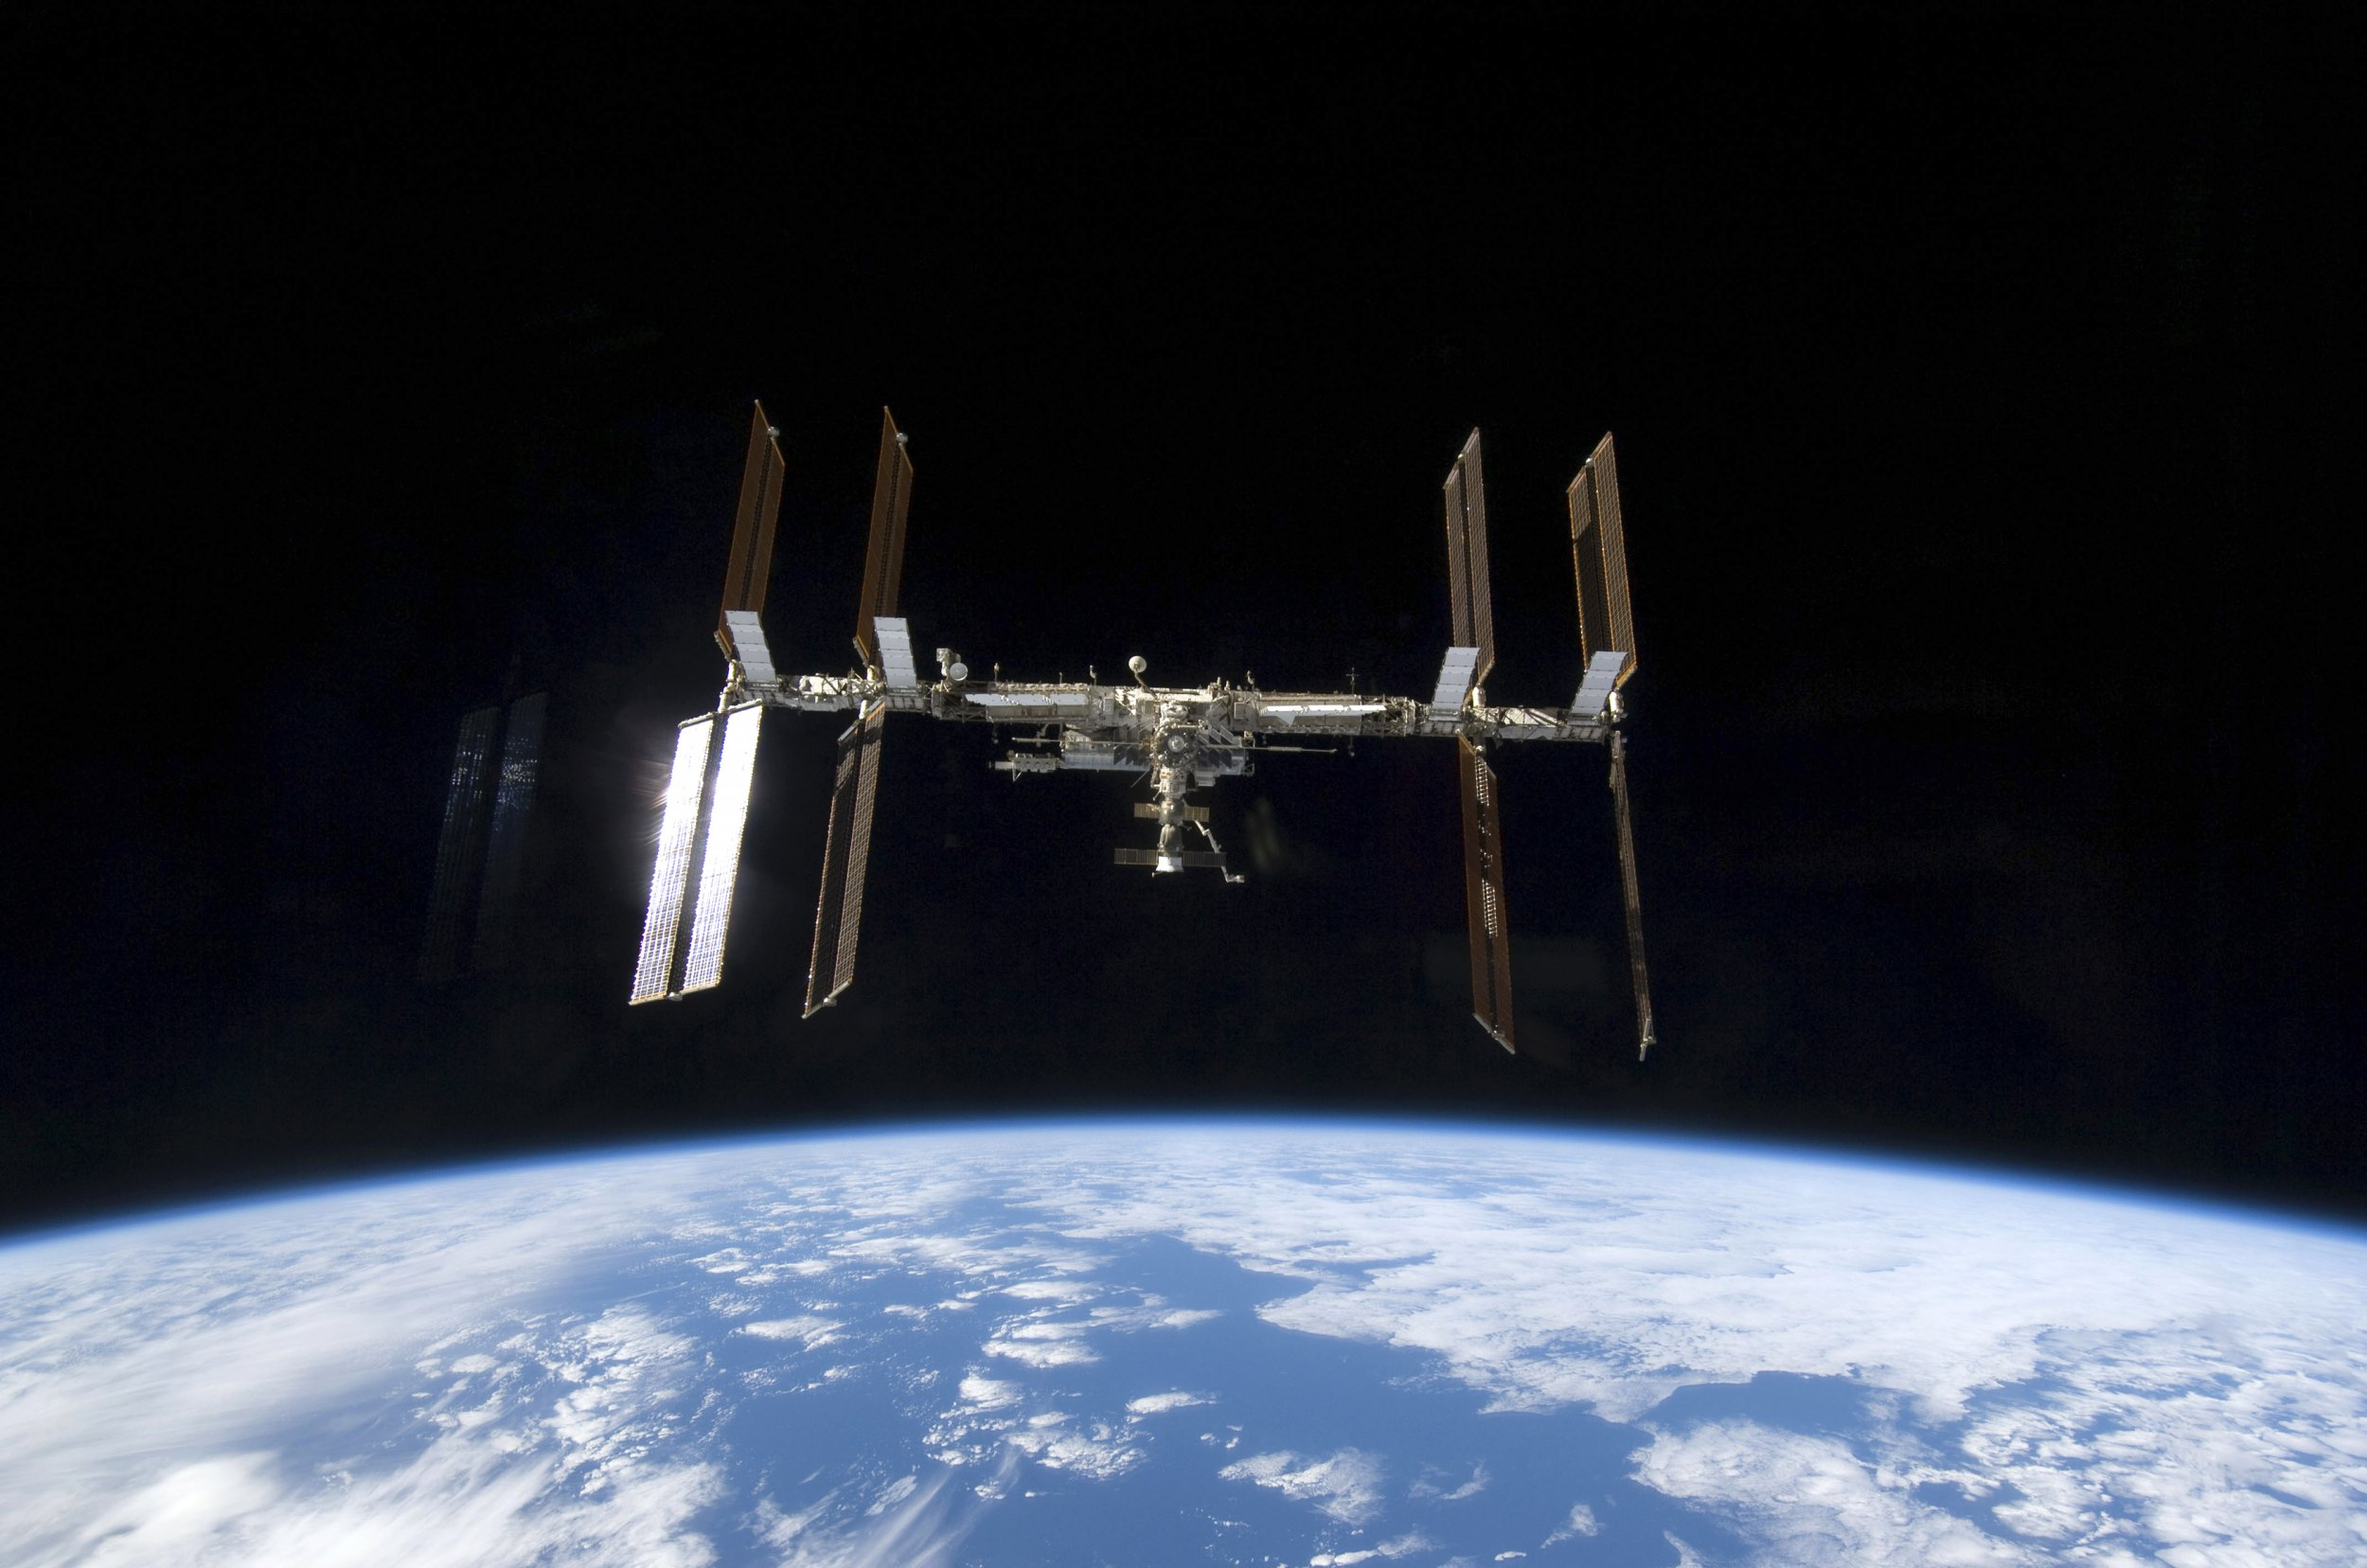 international space station space view - photo #11